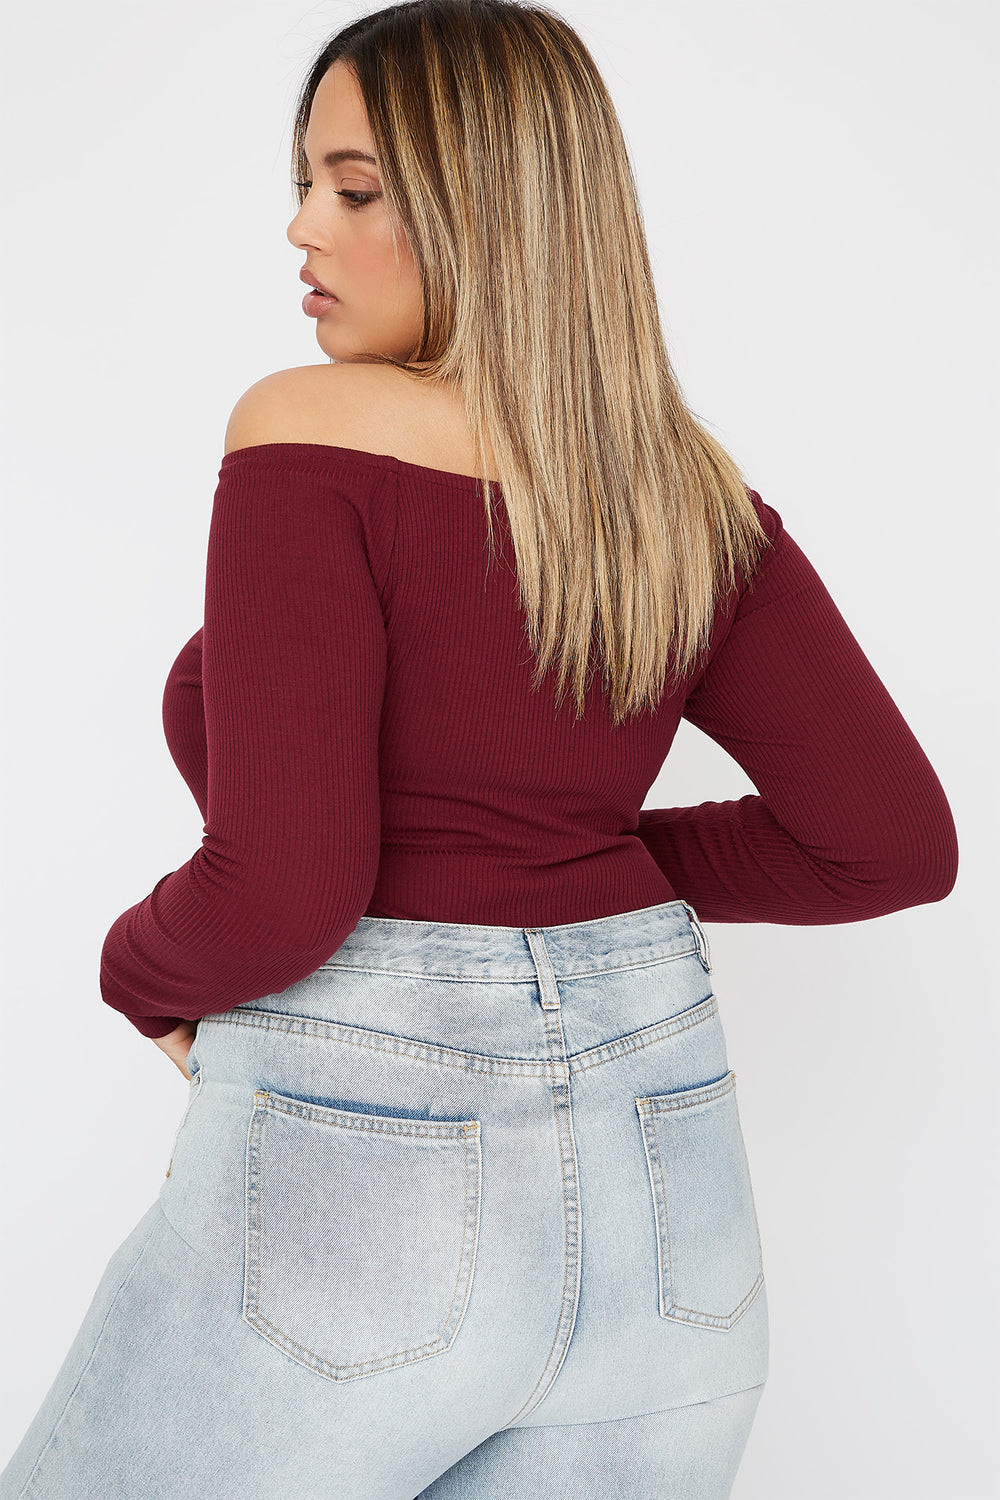 Plus Size Knit Off the Shoulder Button Long Sleeve Burgundy